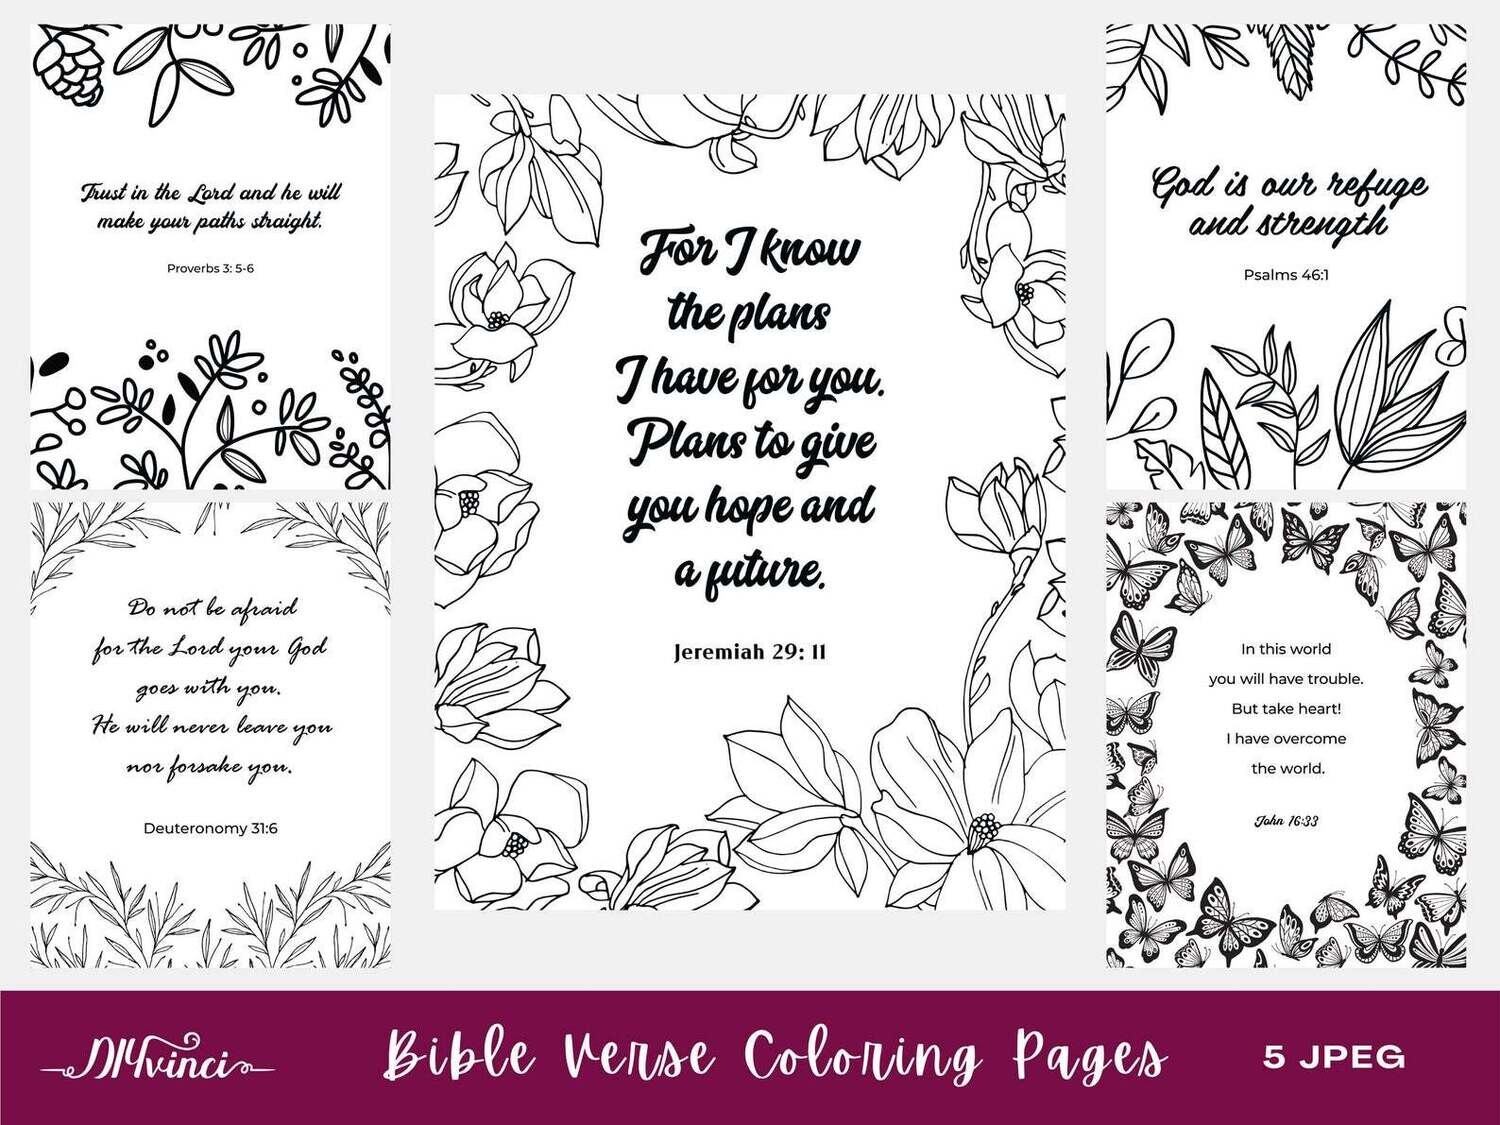 Printable Bible Verse Coloring Pages - 5 JPEG - Personal & Commercial Use